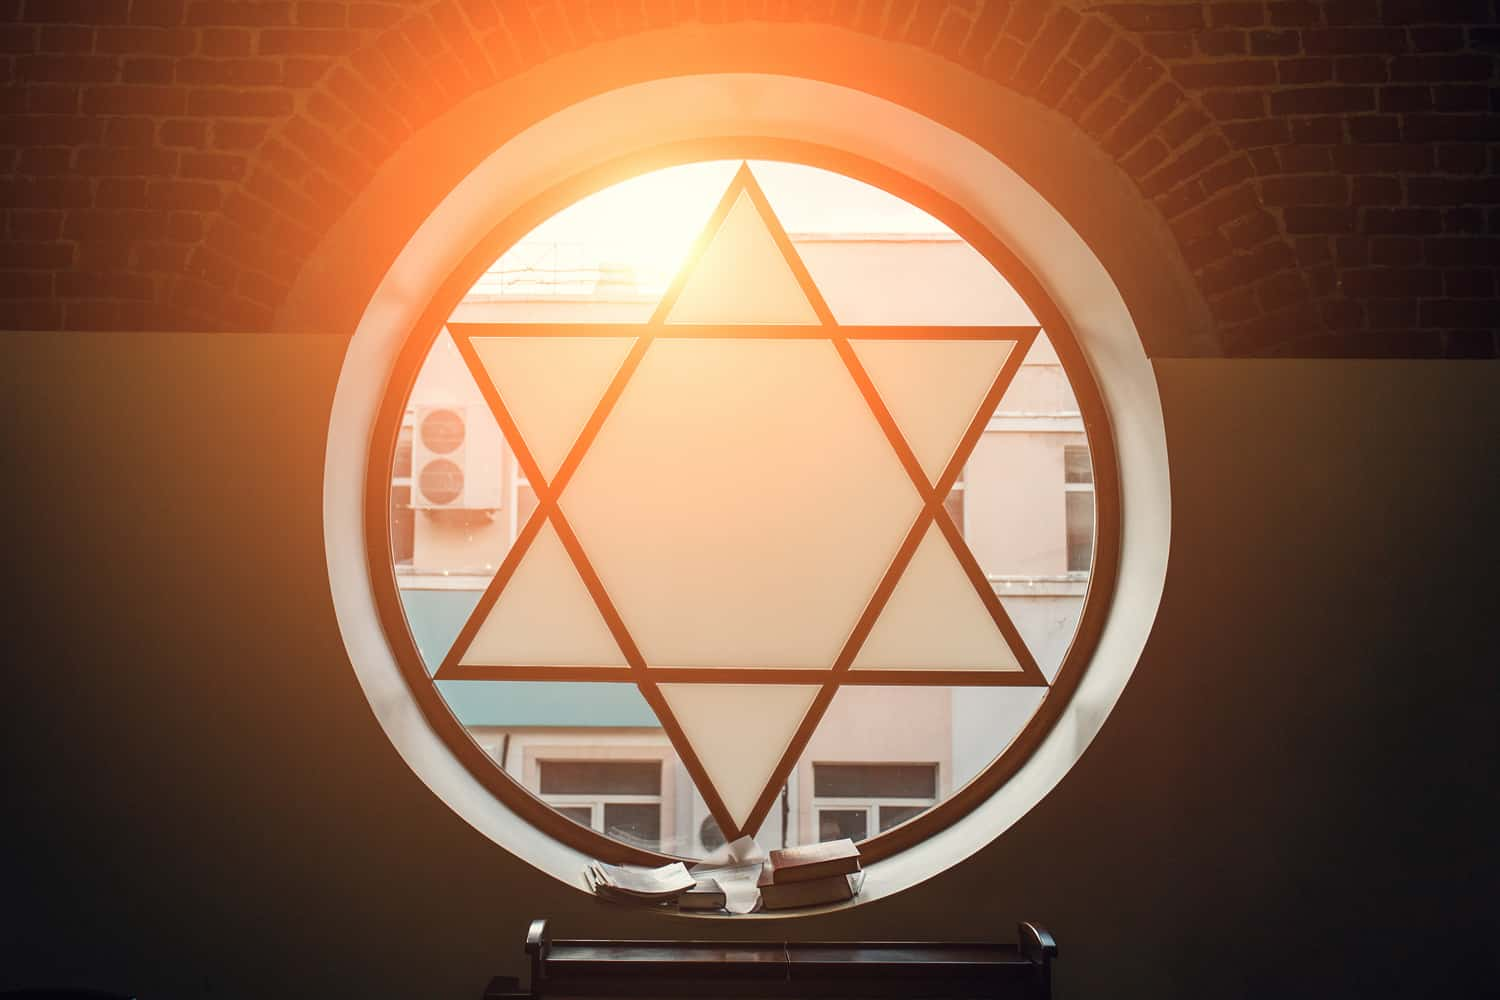 Synagogue window in the form of a Star of David